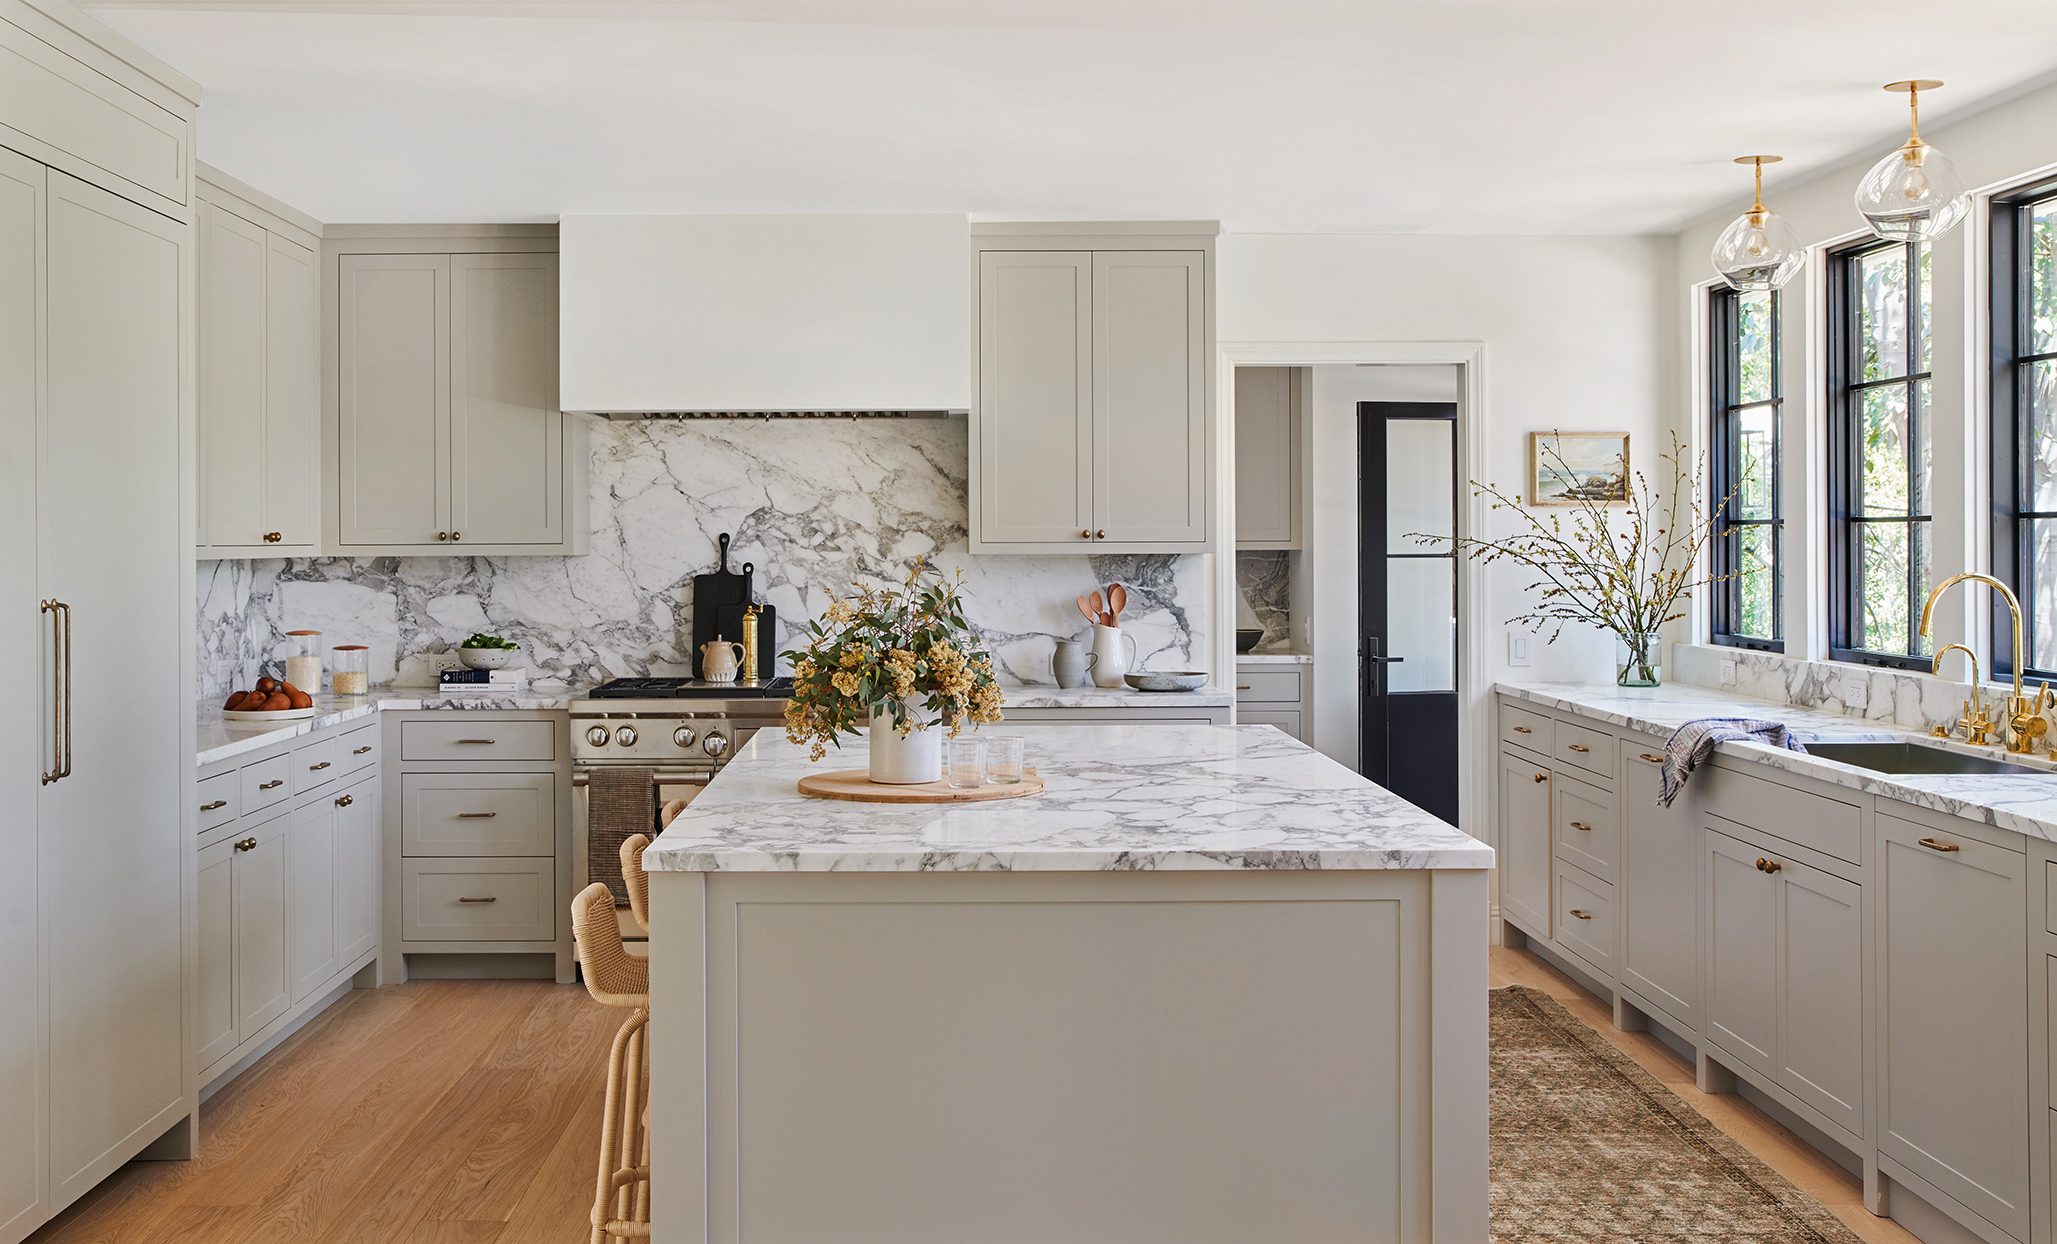 11 Gorgeous Marble Backsplashes That'll Refresh Any Kitchen